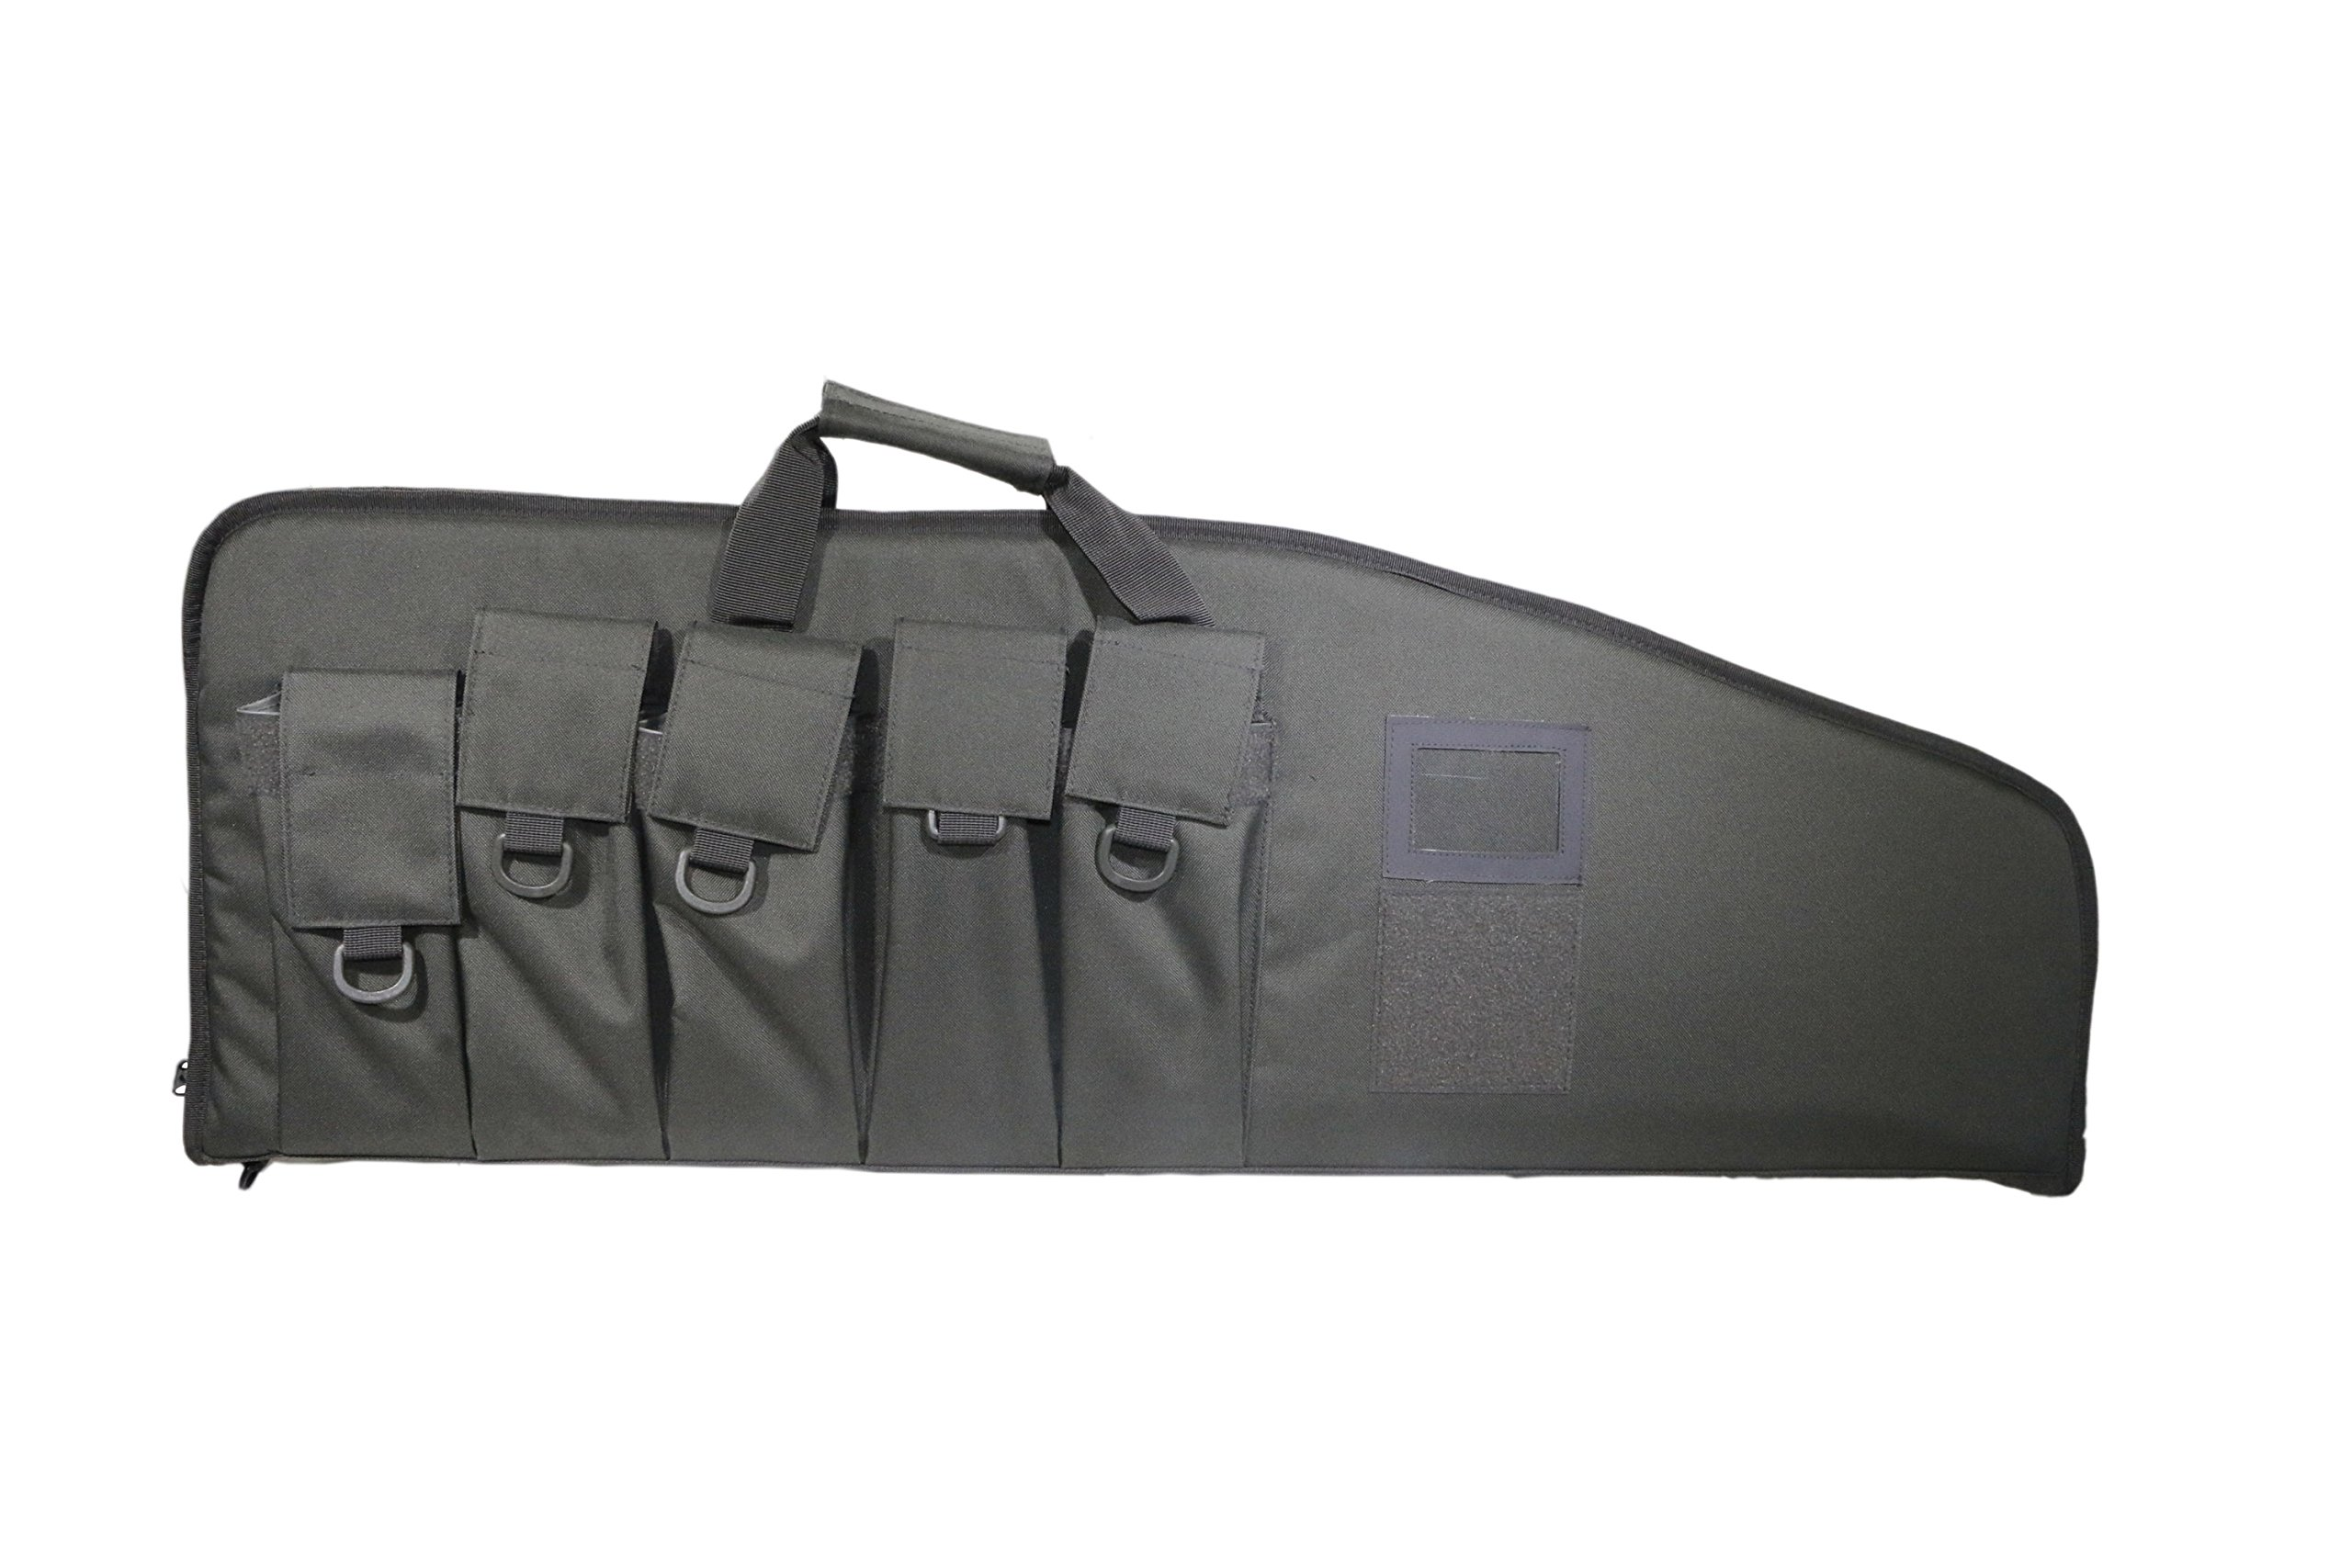 ARMYCAMOUSA Rifle Bag Outdoor Tactical Carbine Cases Water dust Resistant Long Gun Case Bag with Five Magazine Pouches for Hunting Shooting Range Sports Storage and Transport (42'' Grey) by ARMYCAMOUSA